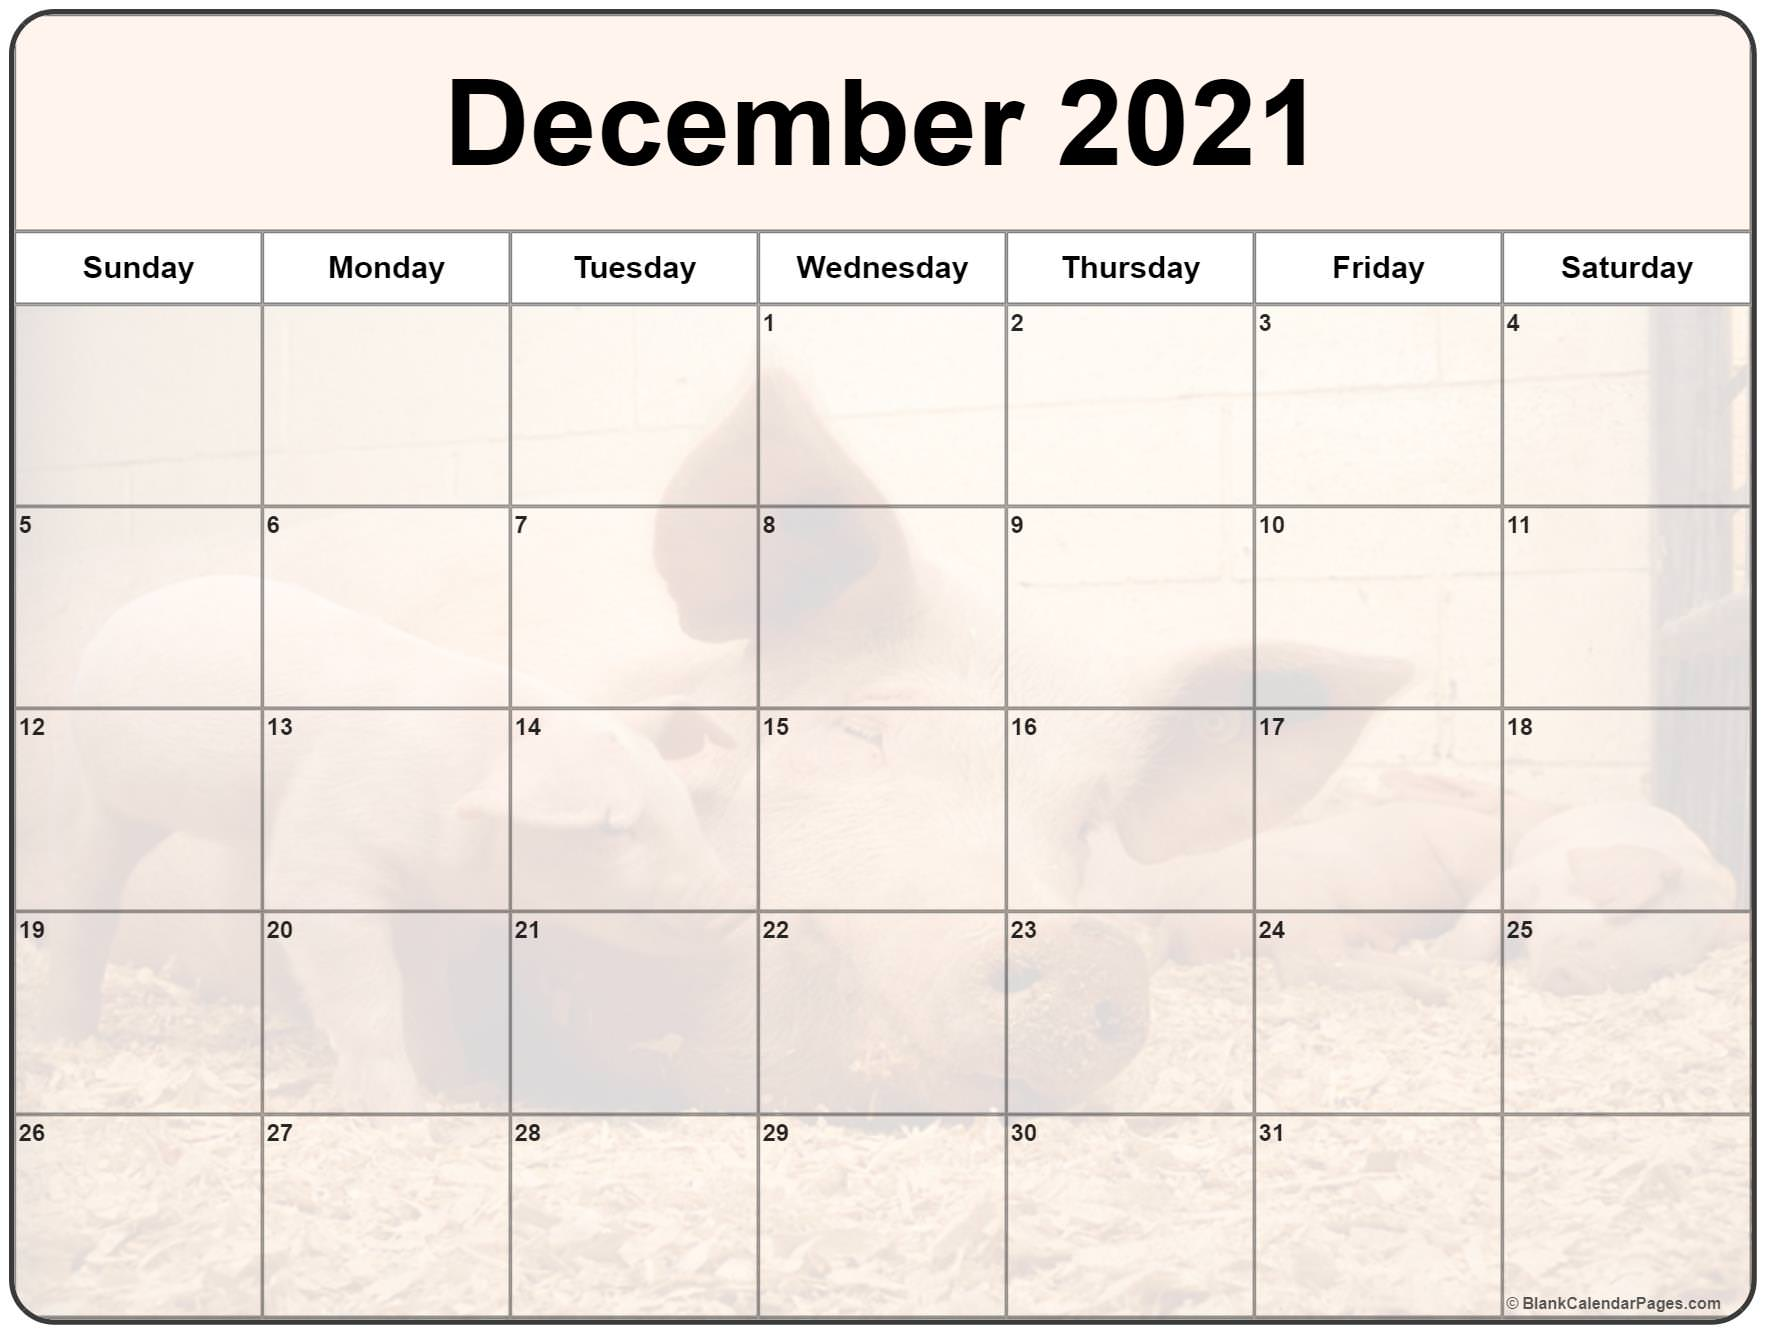 December 2021 picture calendar with cute piglet filters